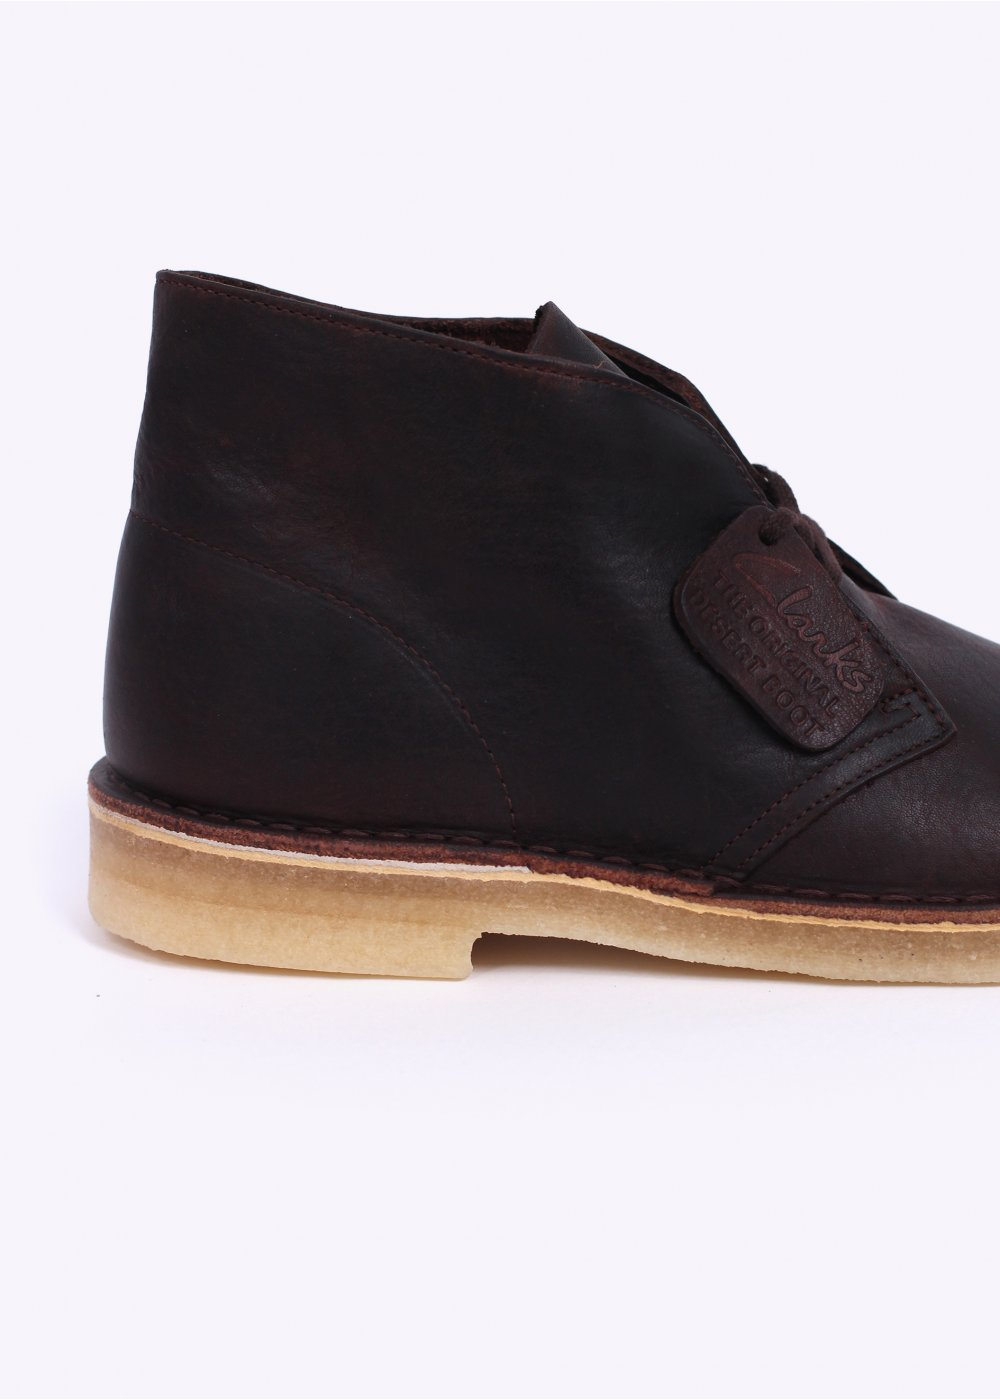 clarks originals desert boot tumble brown. Black Bedroom Furniture Sets. Home Design Ideas